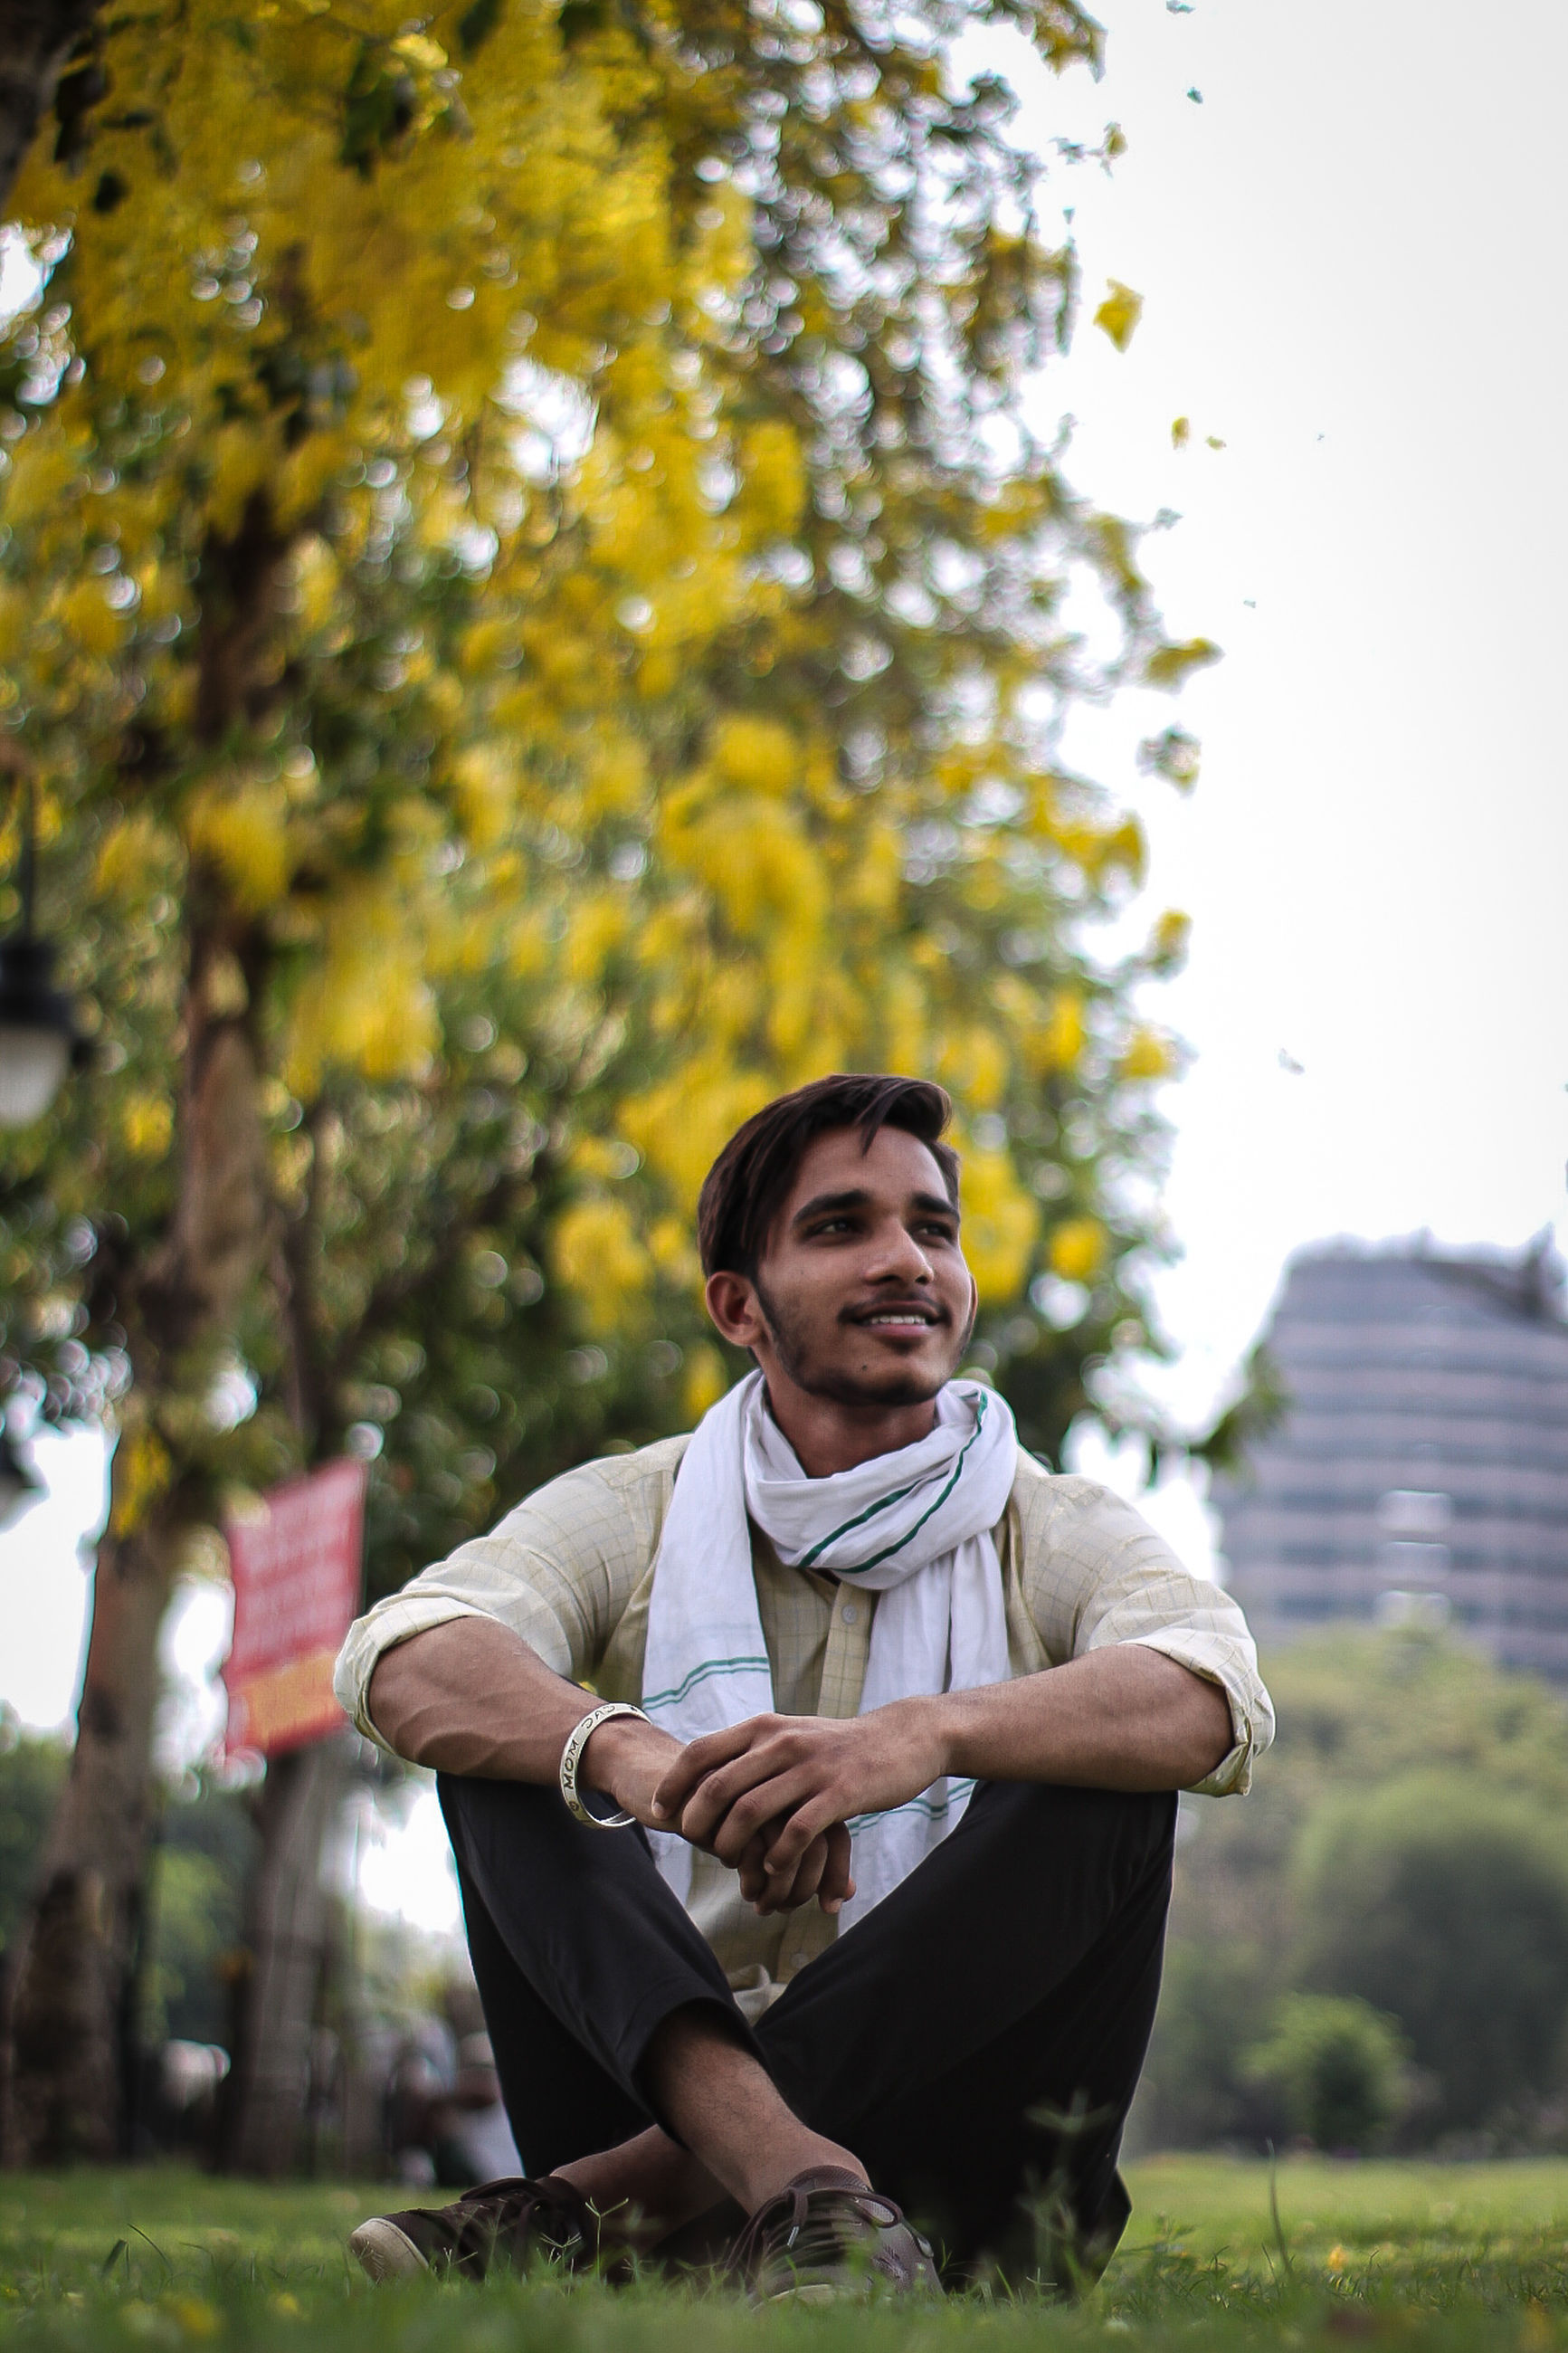 one person, adult, plant, men, nature, sitting, relaxation, tree, full length, grass, lifestyles, young adult, autumn, leisure activity, looking, day, outdoors, casual clothing, emotion, person, smiling, contemplation, front view, clothing, copy space, happiness, park, portrait, park - man made space, looking away